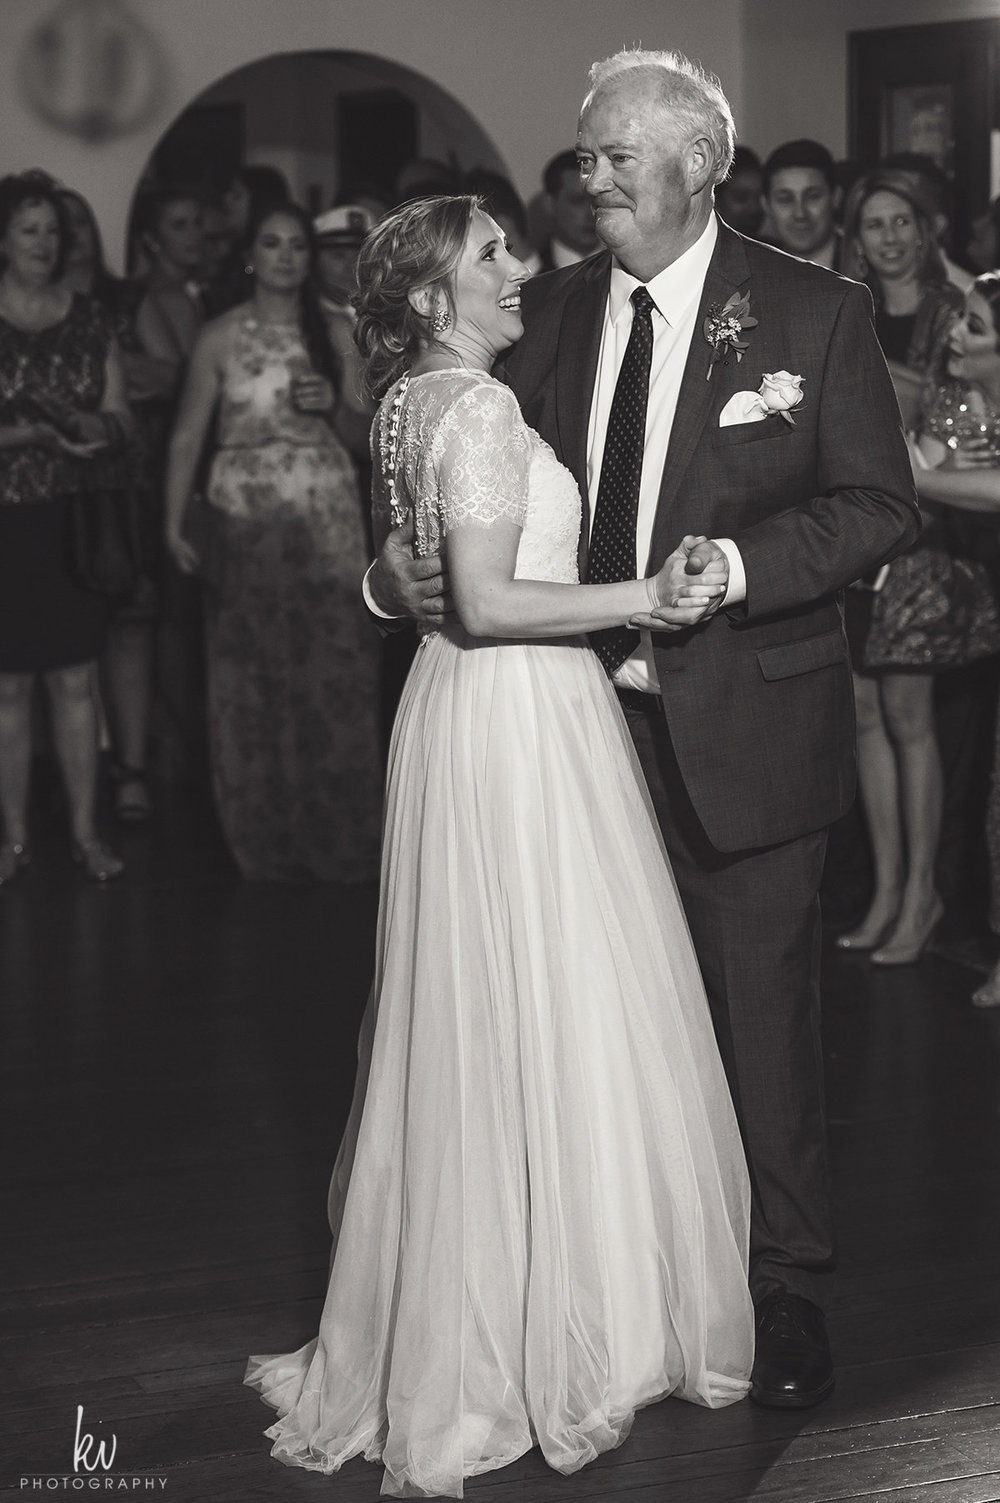 The bride and her father dancing, Winter Park wedding